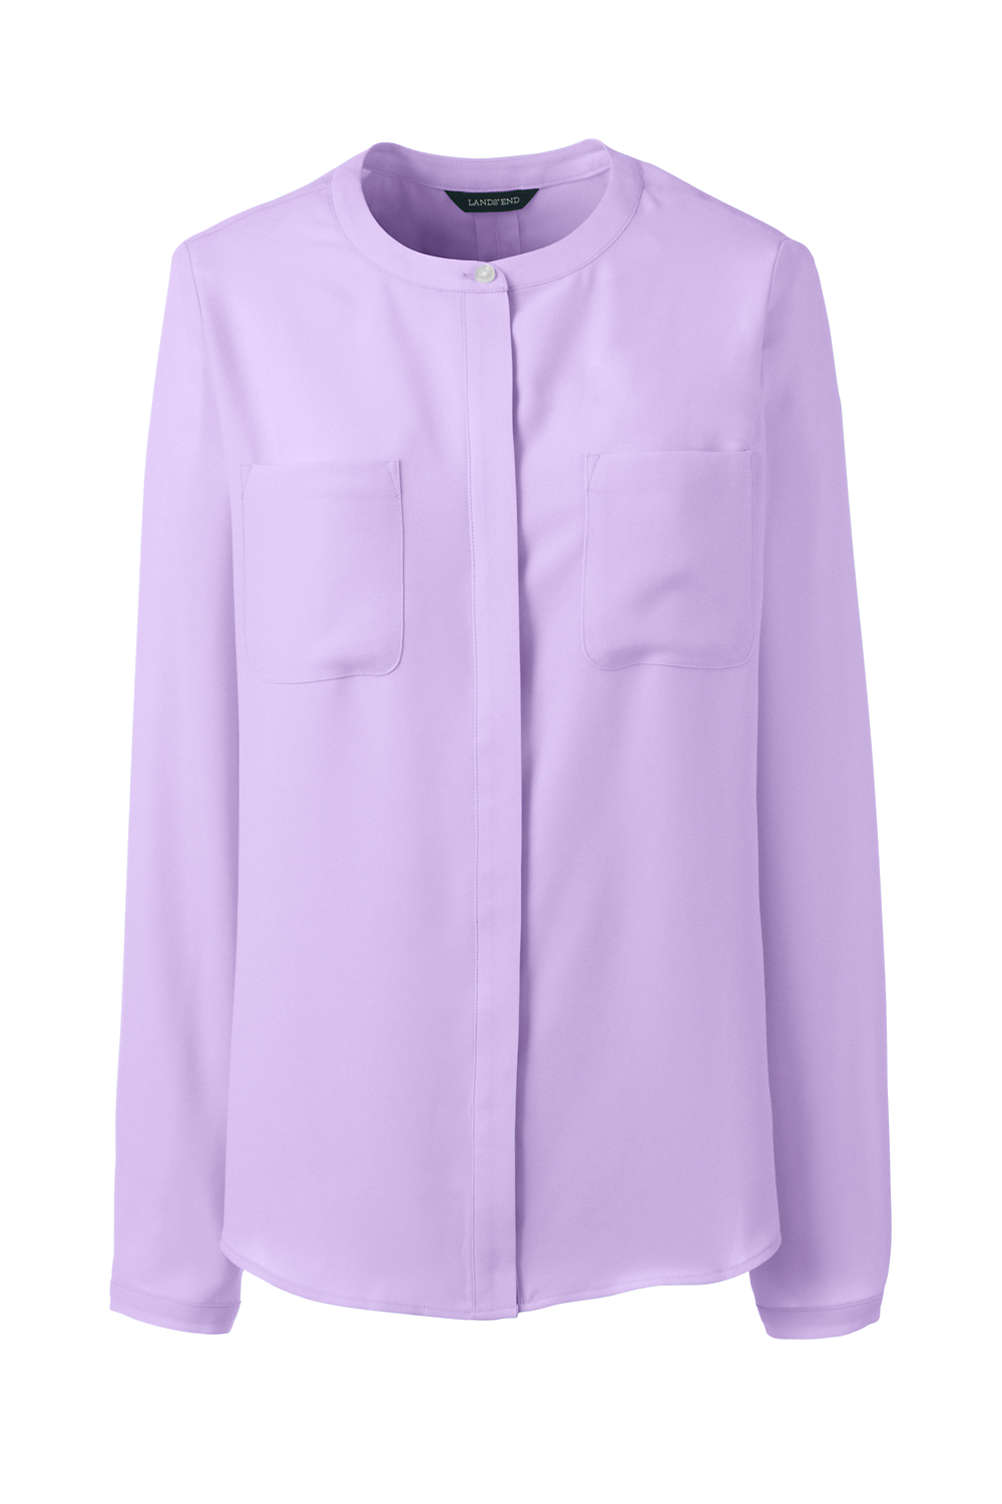 dd5d9be944a77d Women's Long Sleeve Covered Placket Crepe Blouse from Lands' End